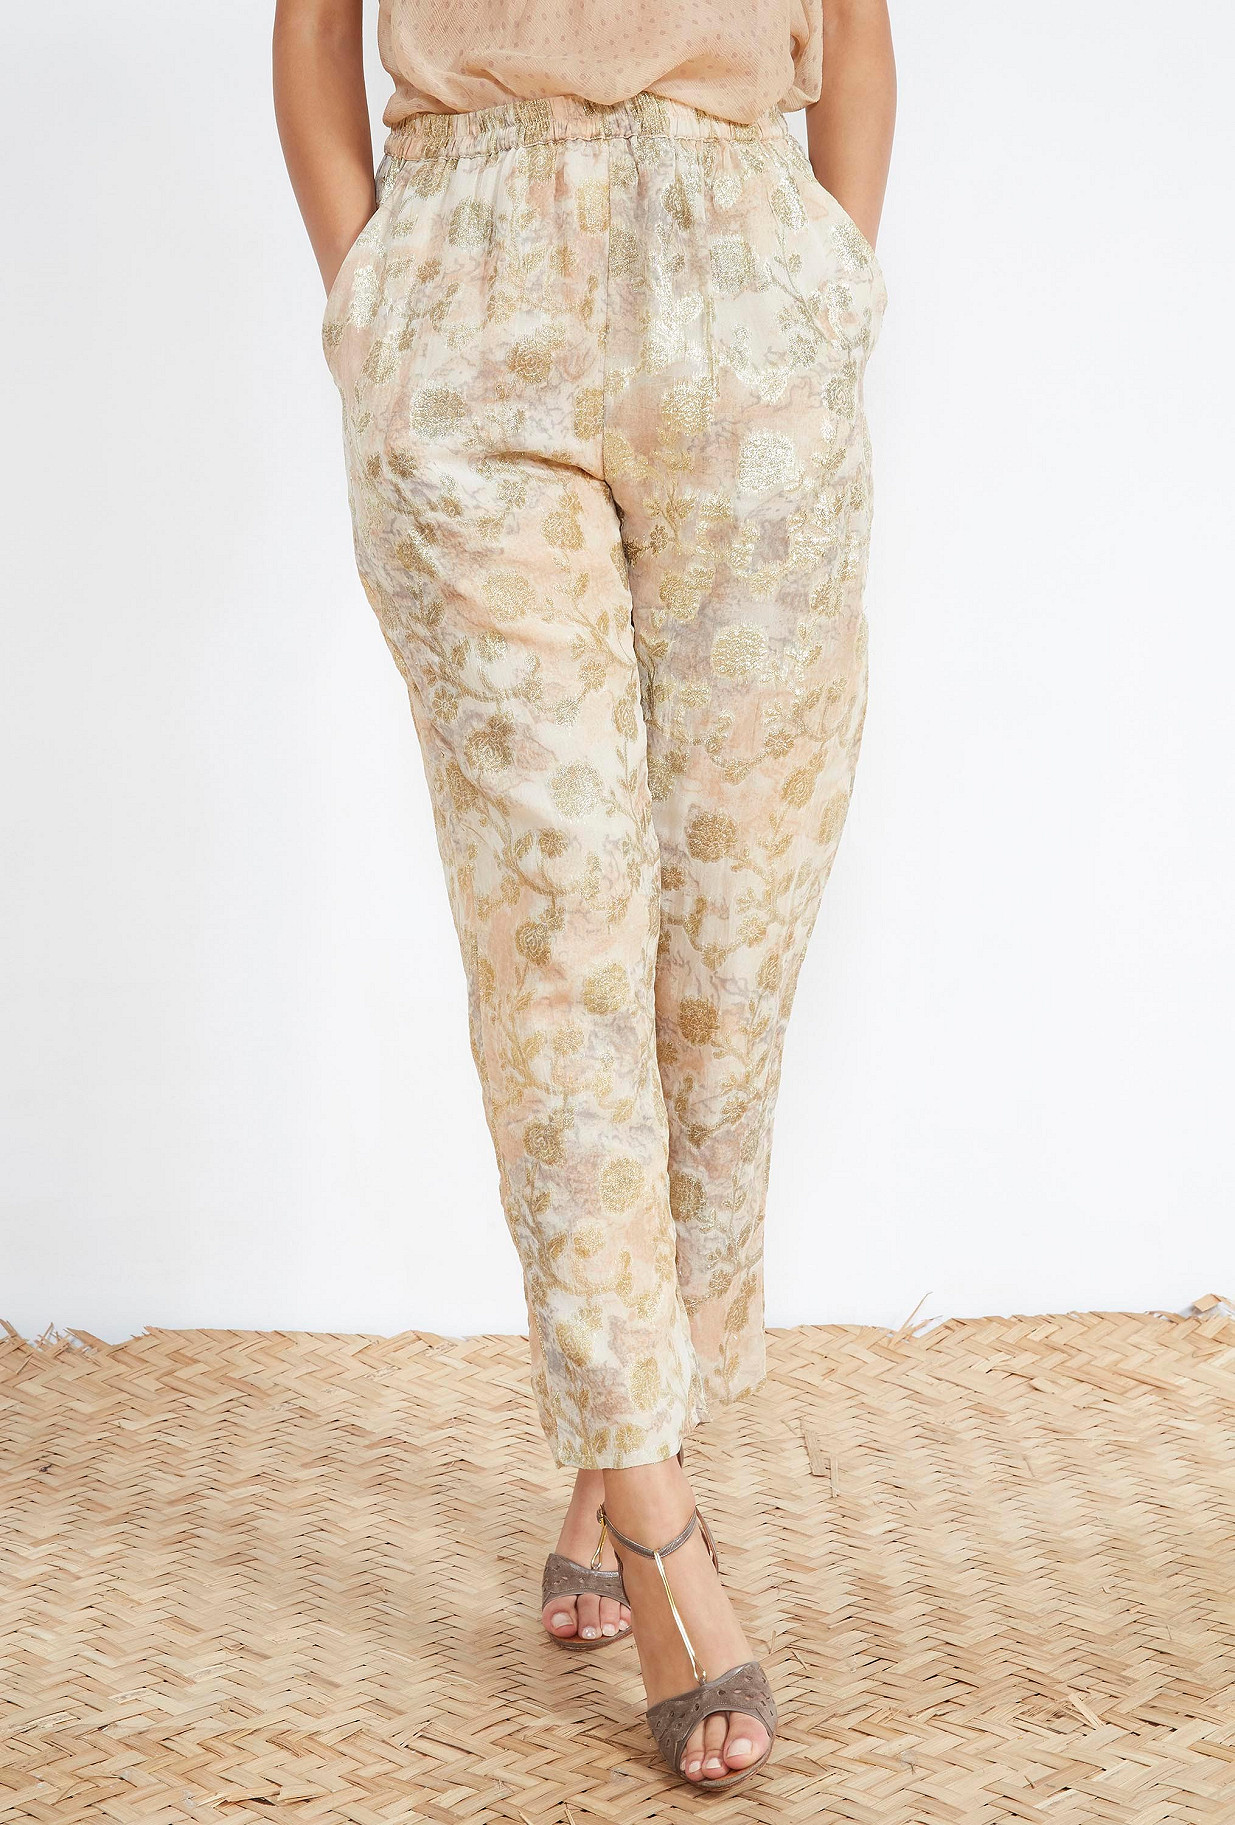 Powder PANTS Attila Mes Demoiselles Paris